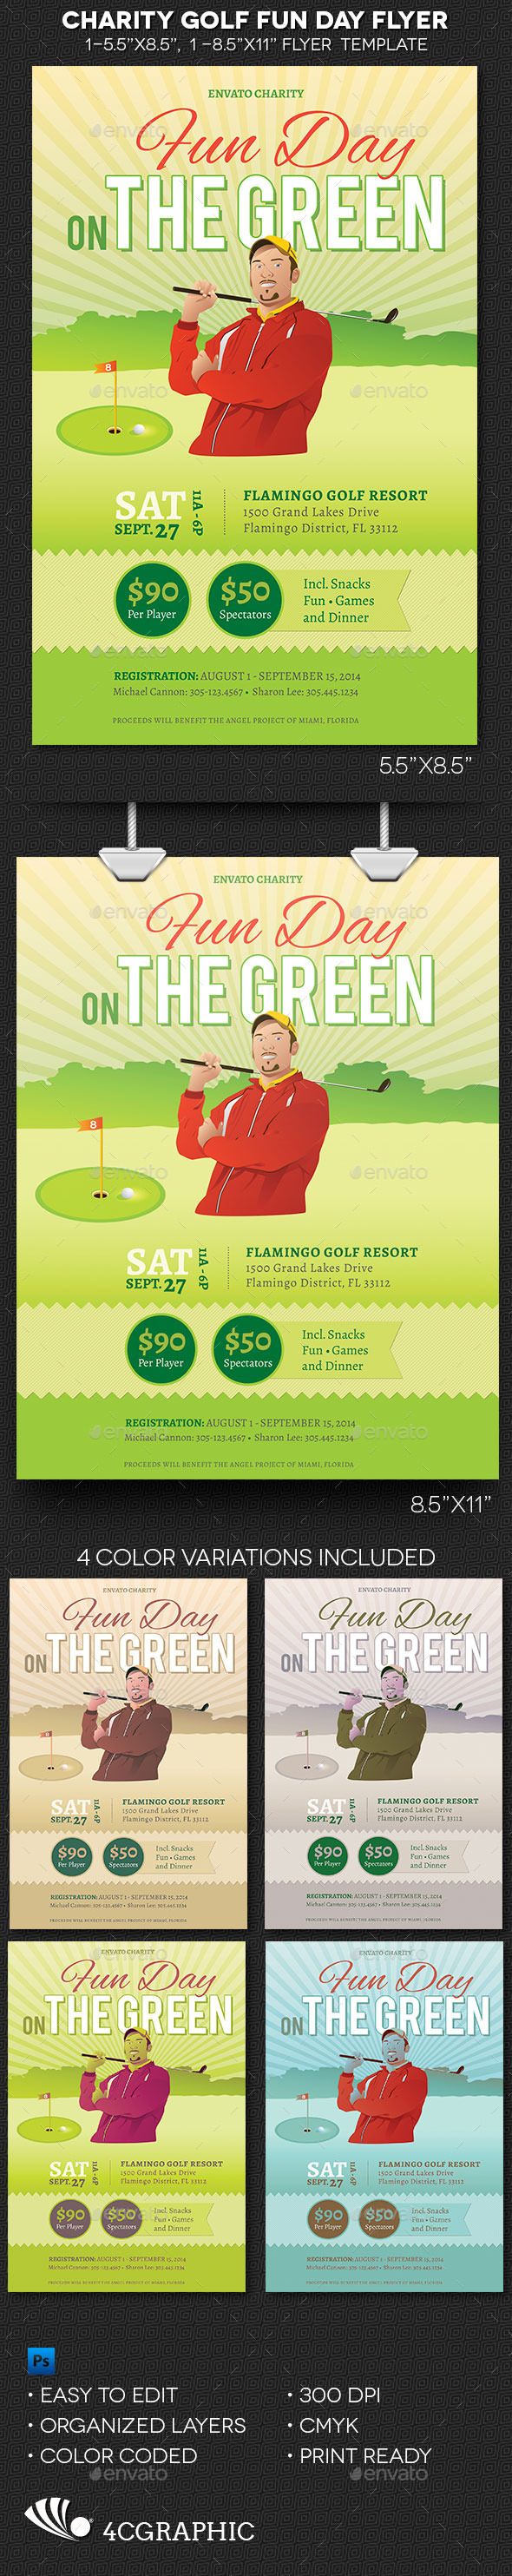 Charity Golf Fun Day Flyer Template  - Sports Events